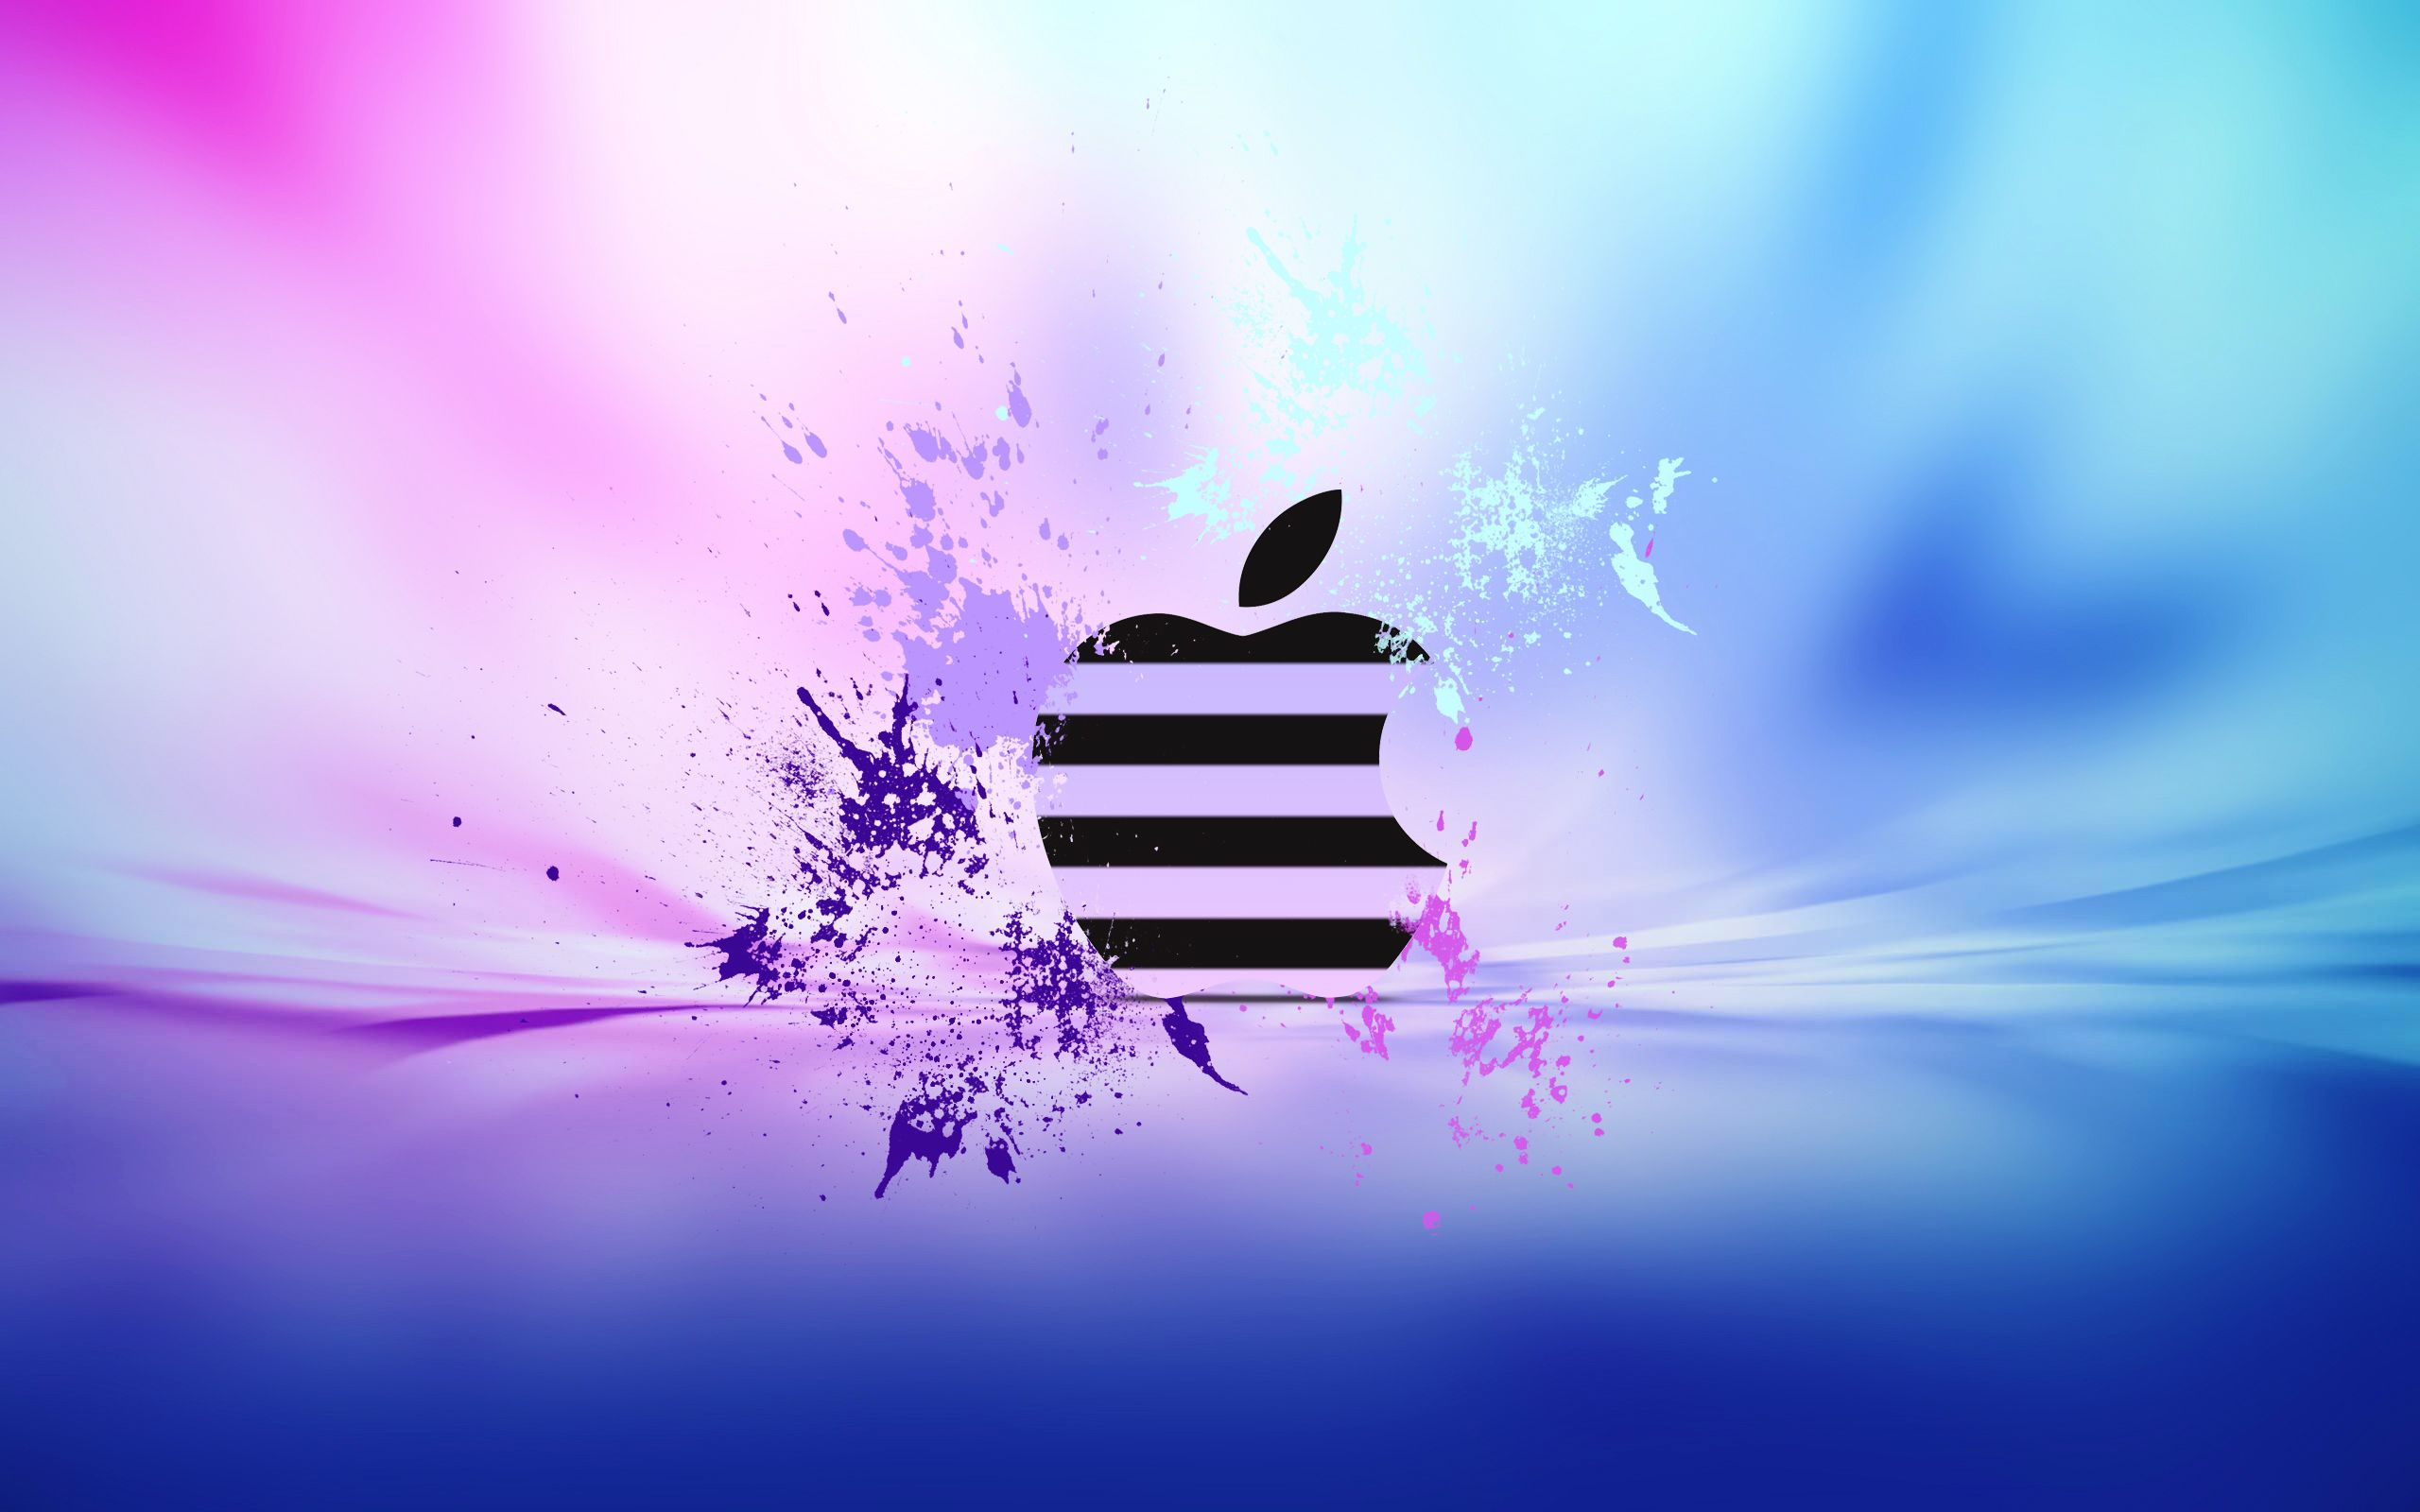 apple logo hd wallpapers for desktop computers | free wallpapers